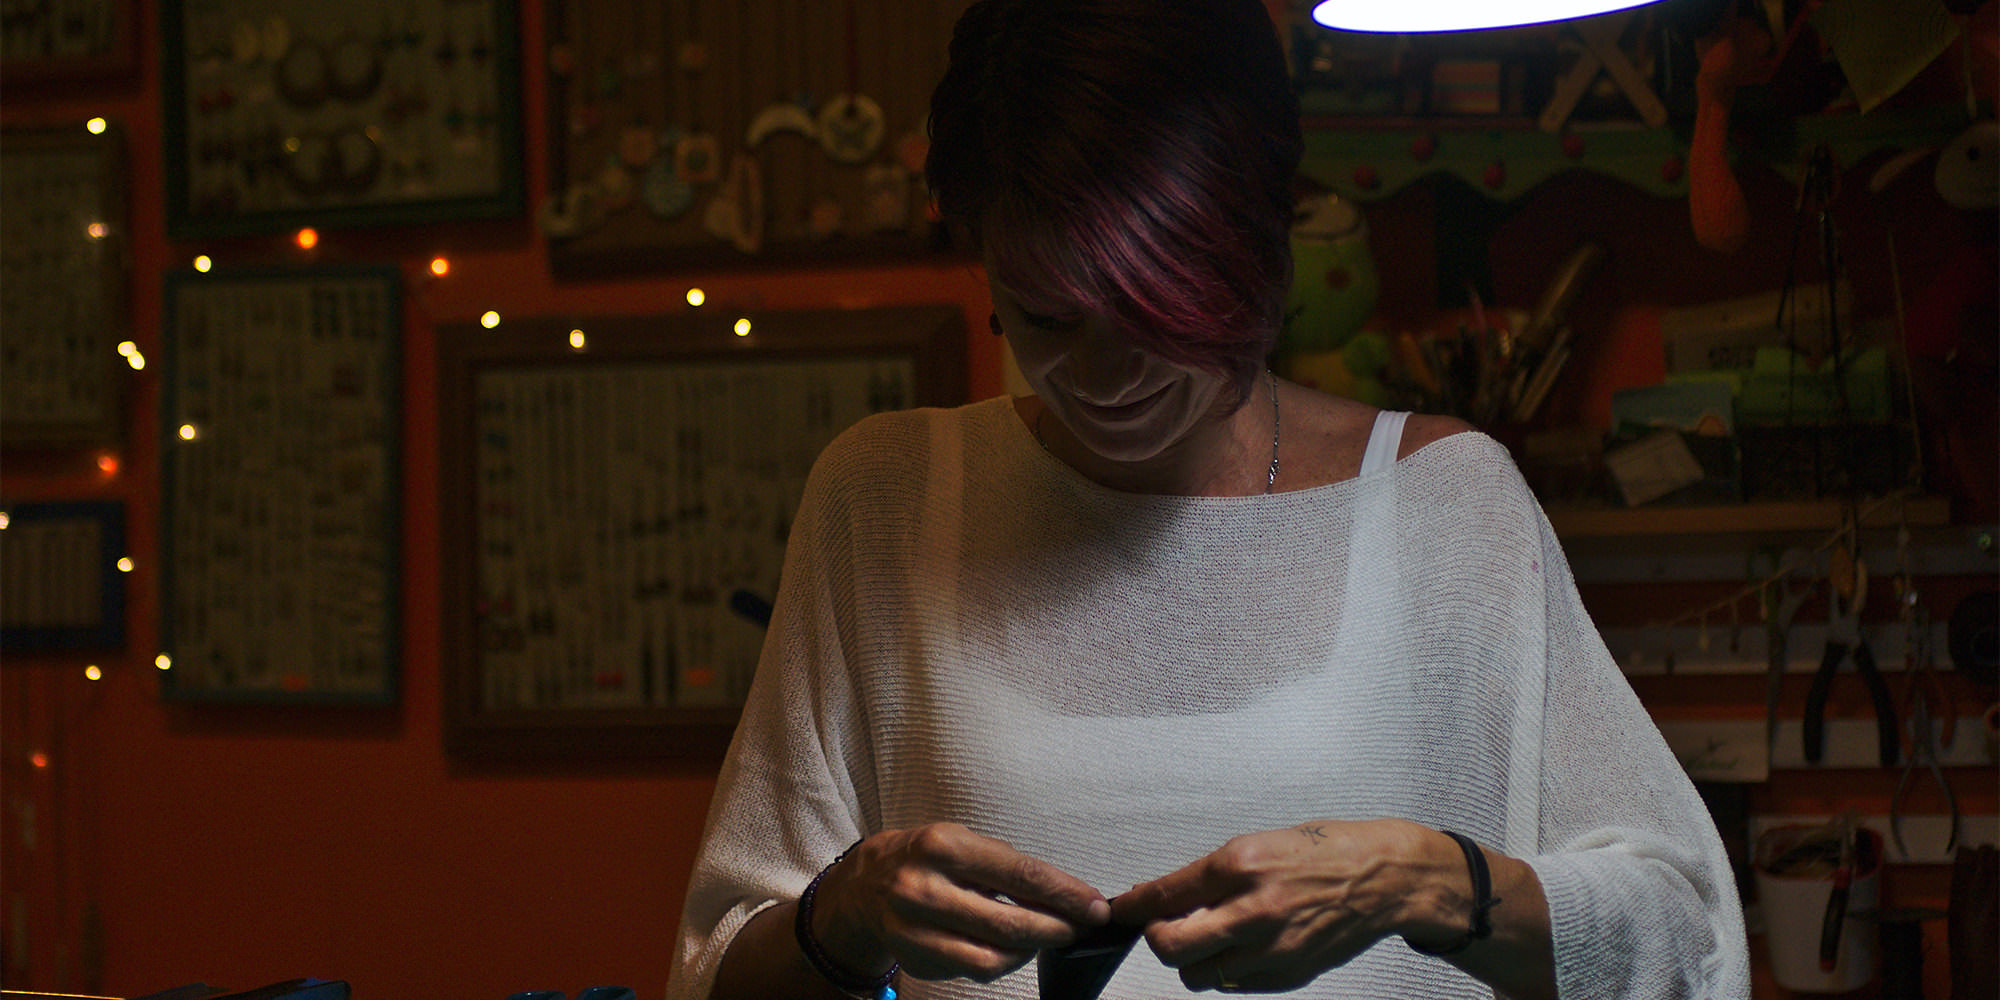 A middle aged-white woman with short dark hair is standing in a dimly lit room holding what looks like it could be a wallet or a coin pouch.